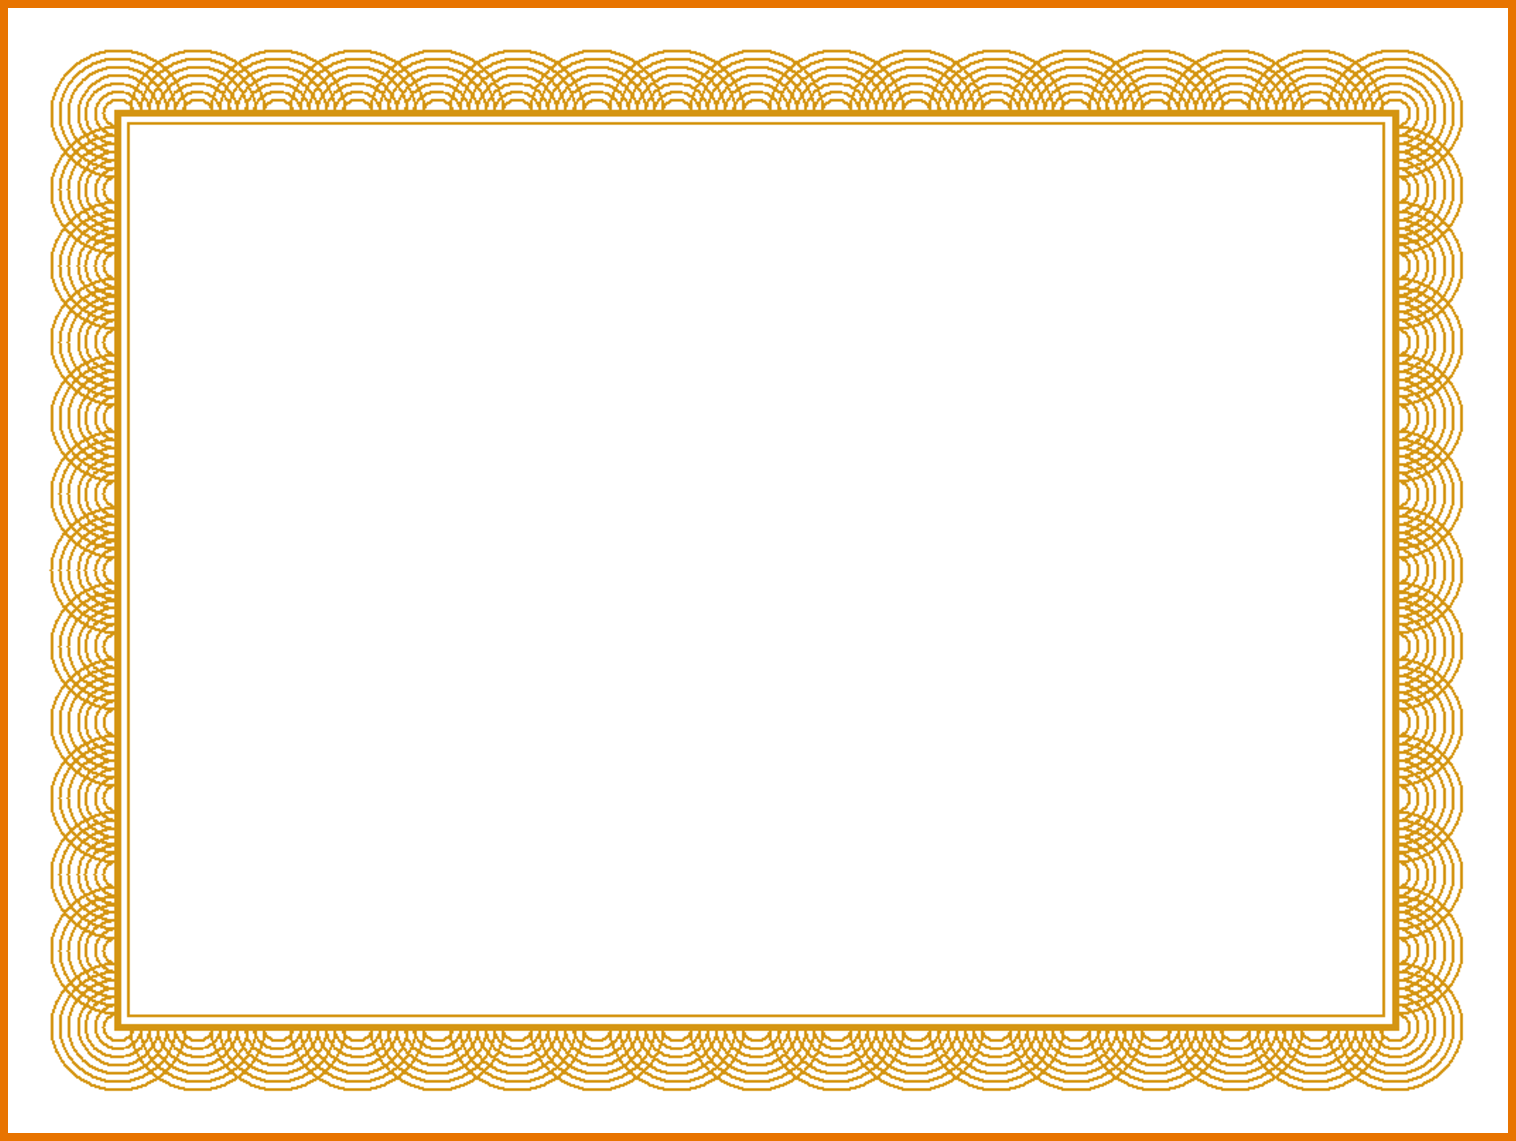 Free png certificates transparent certificatesg images pluspng gold swirl diploma free powerpoint template by bamafun certificate template png free png certificates yadclub Image collections